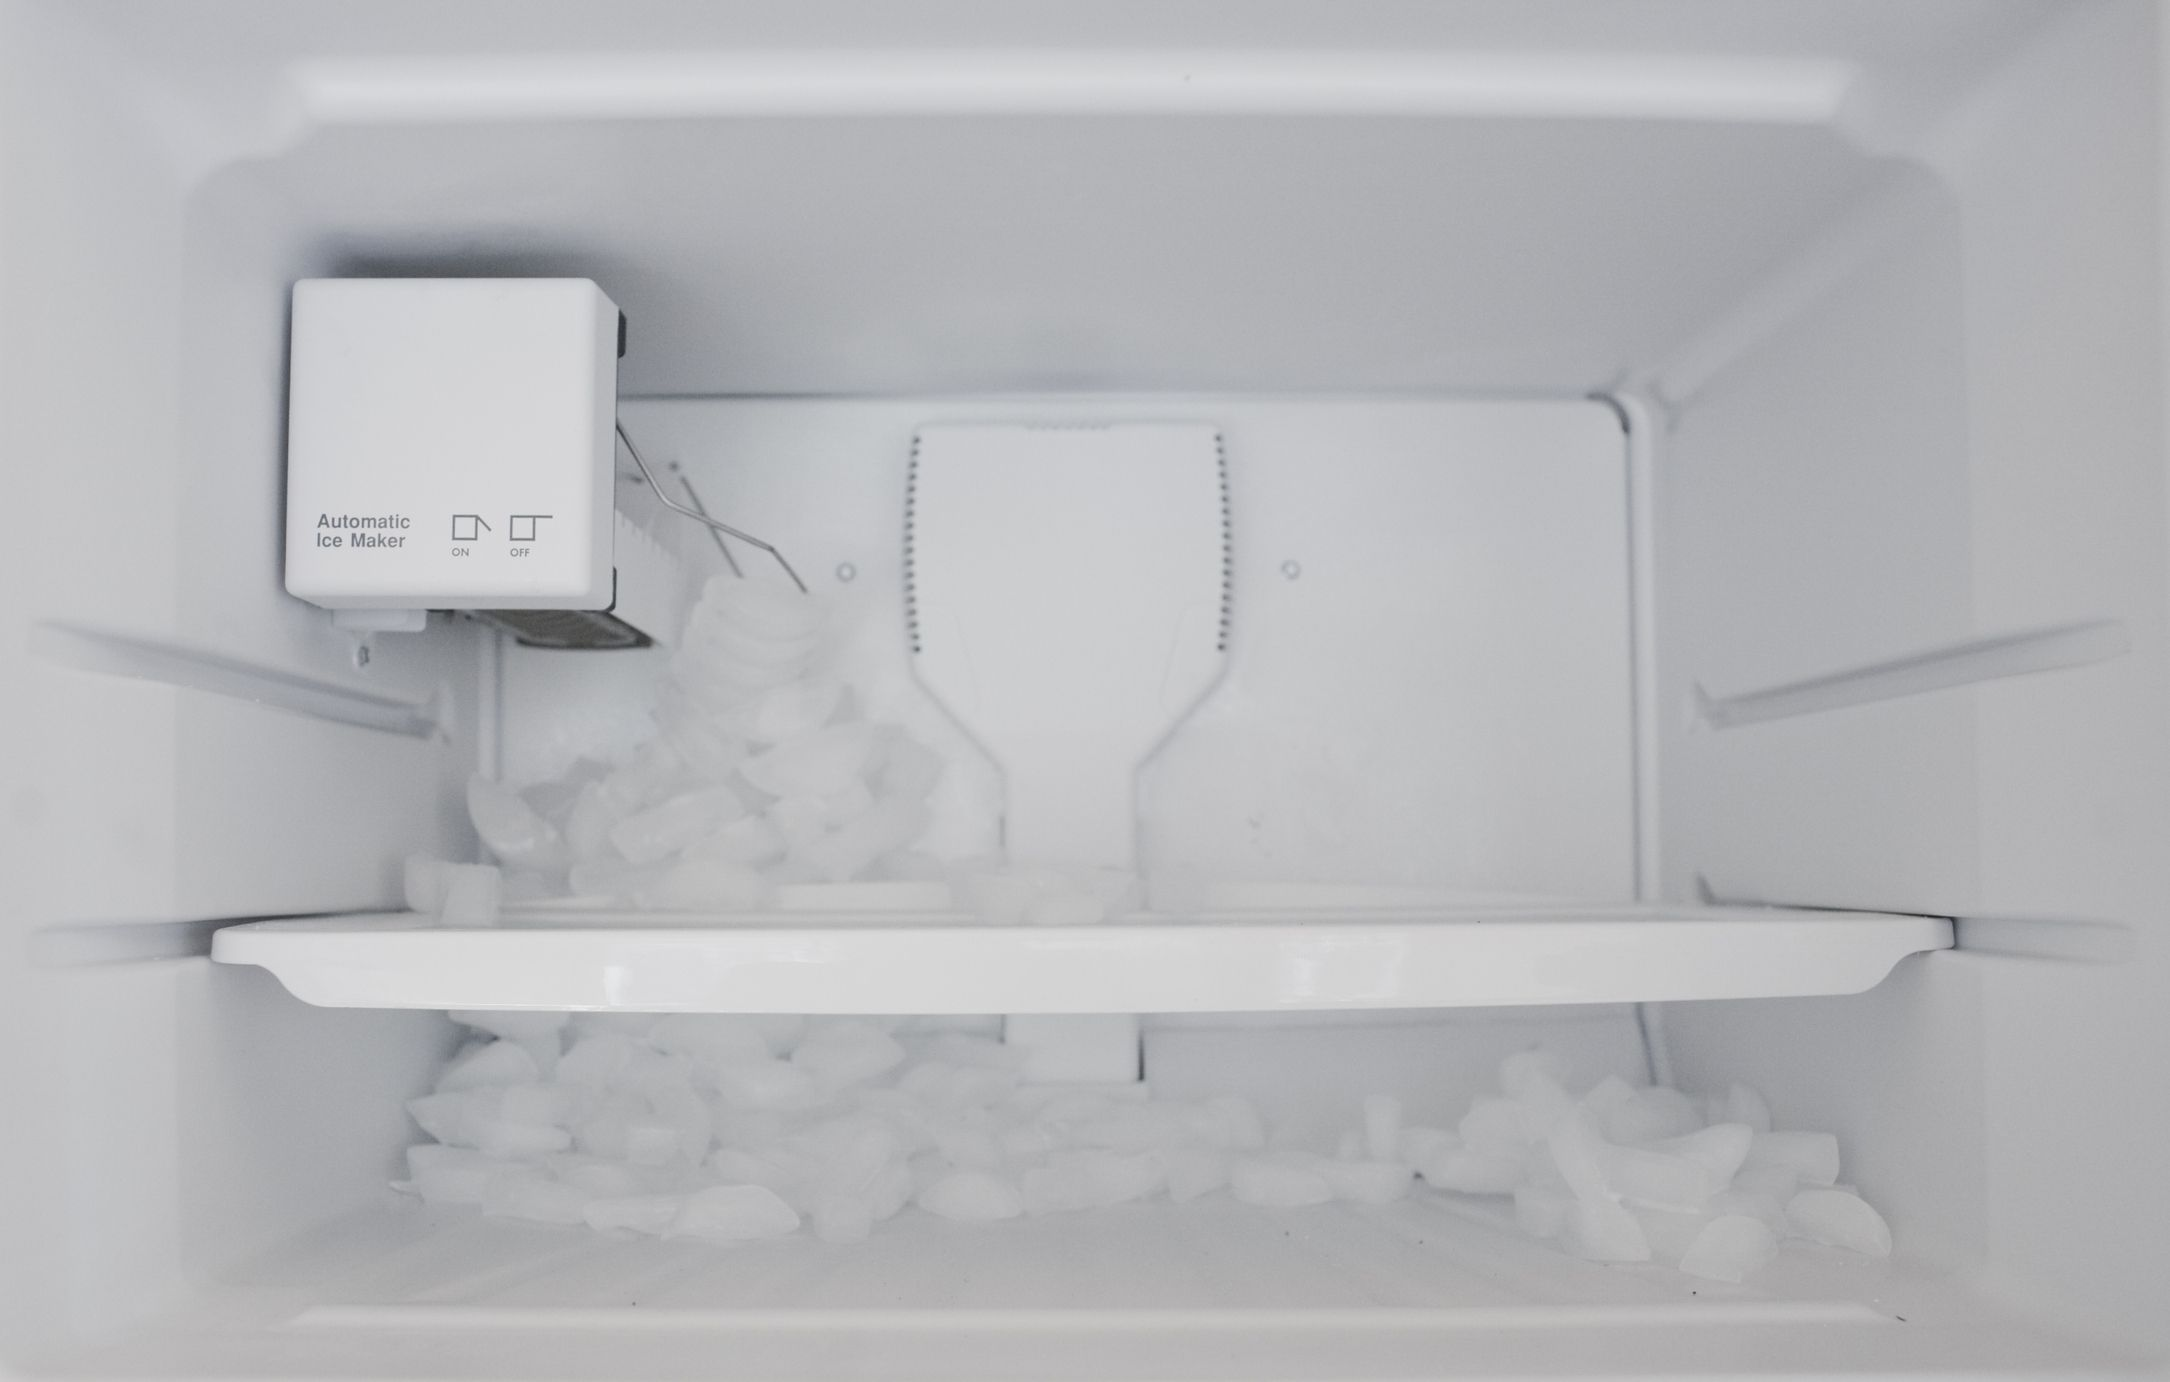 Above view of an ice maker.